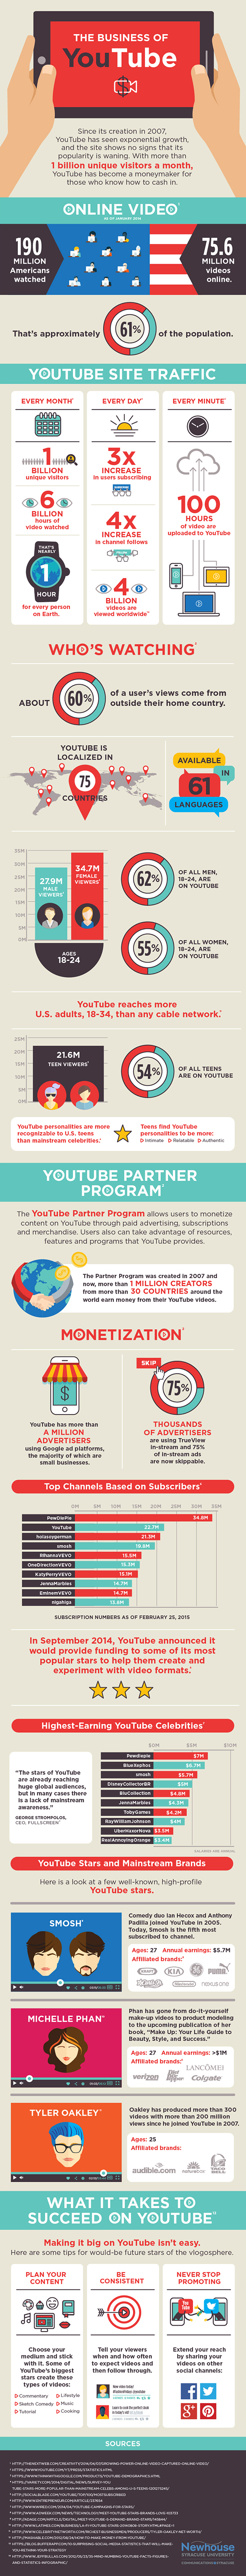 The Business of Youtube